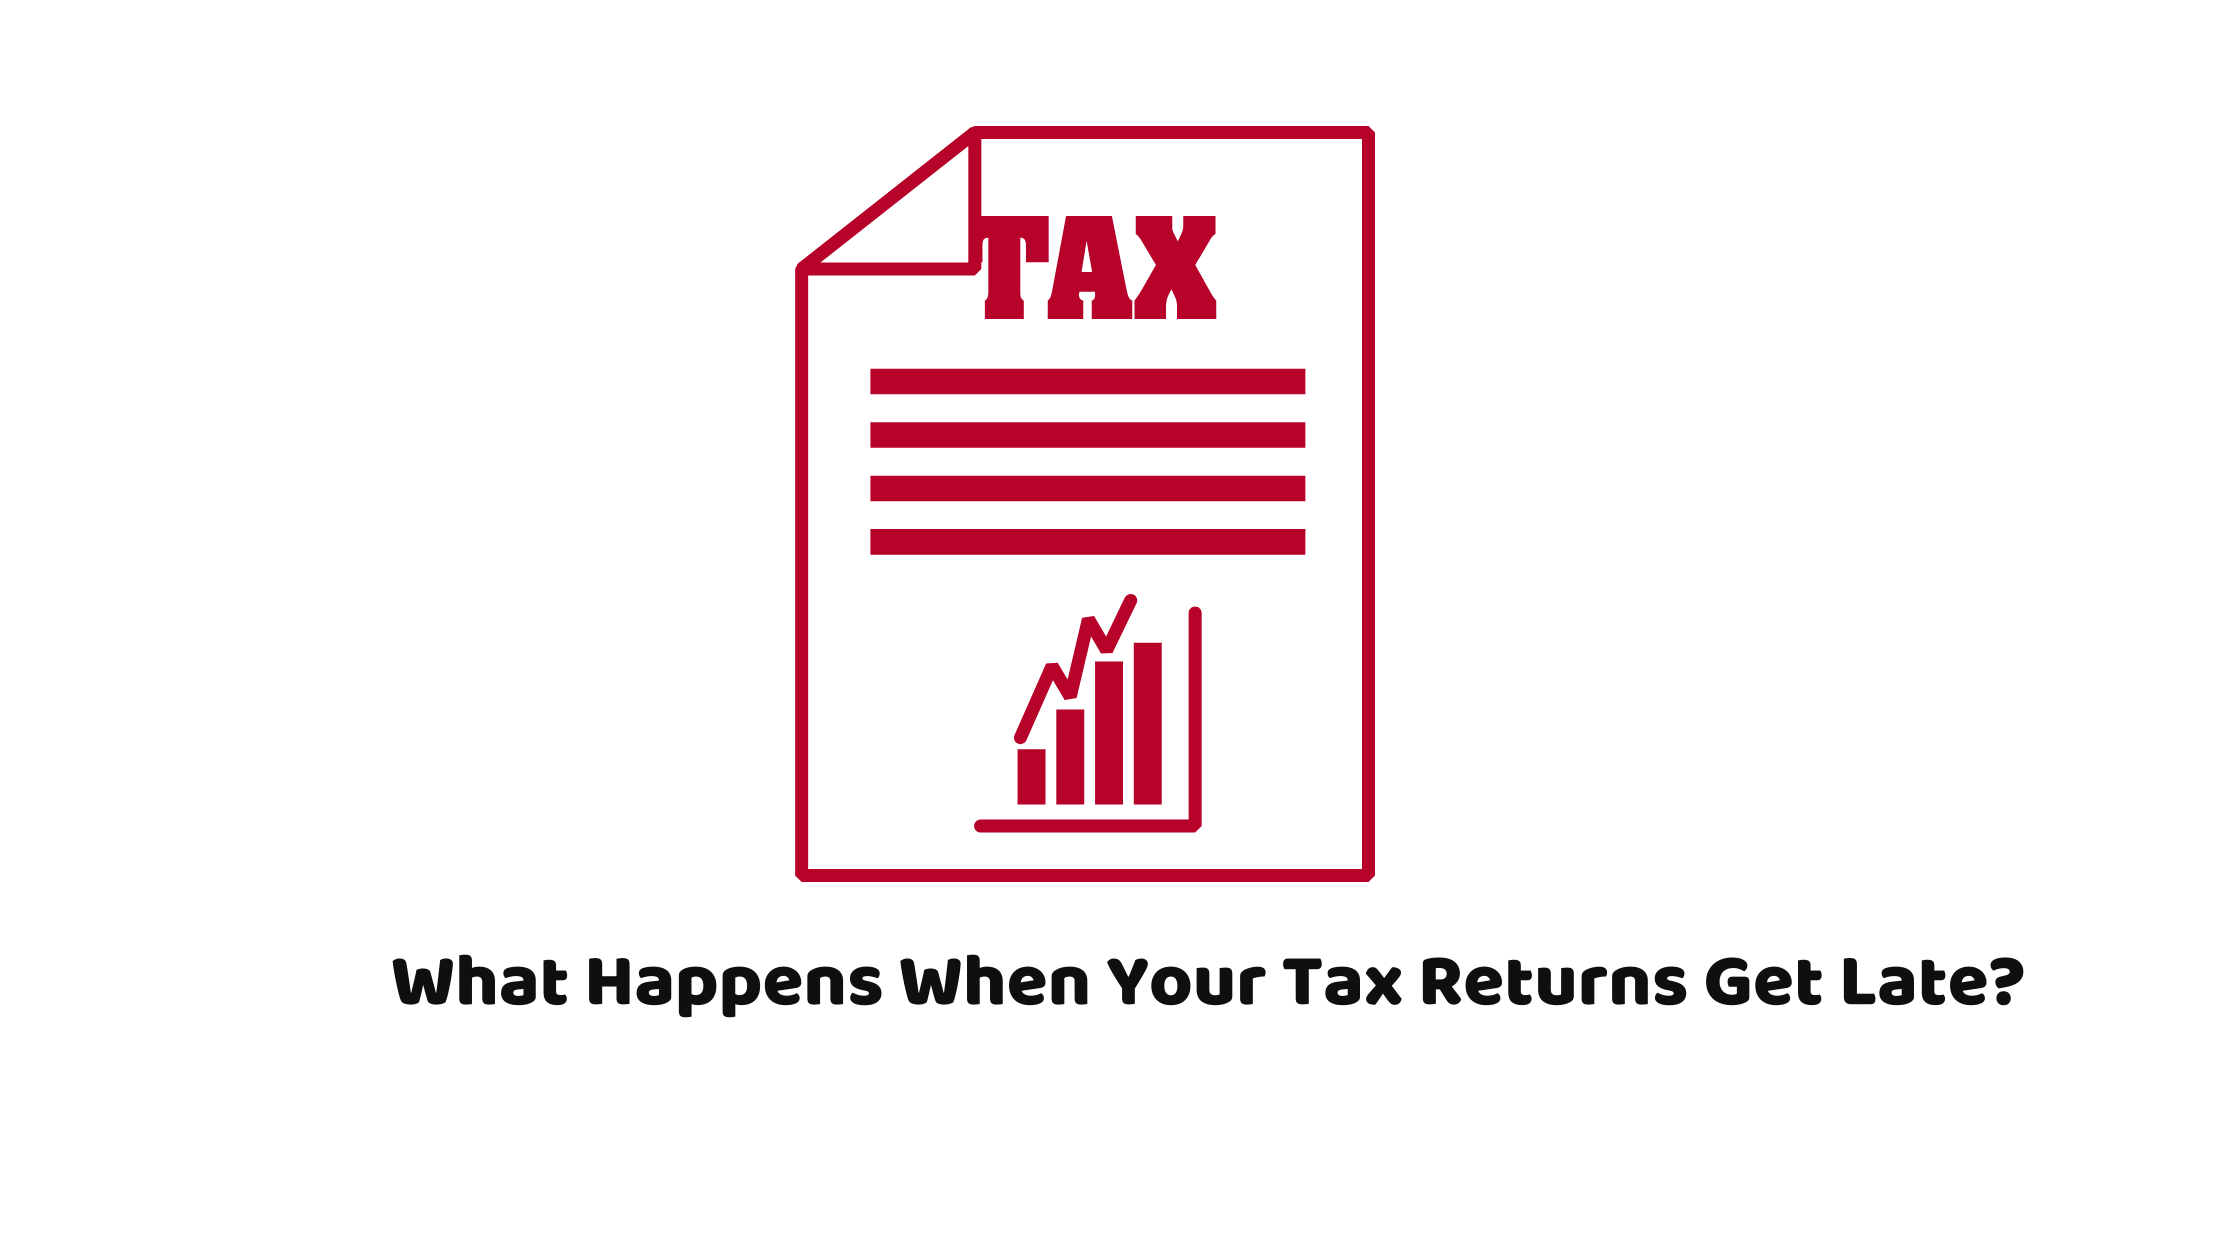 Your Tax Returns Get Late